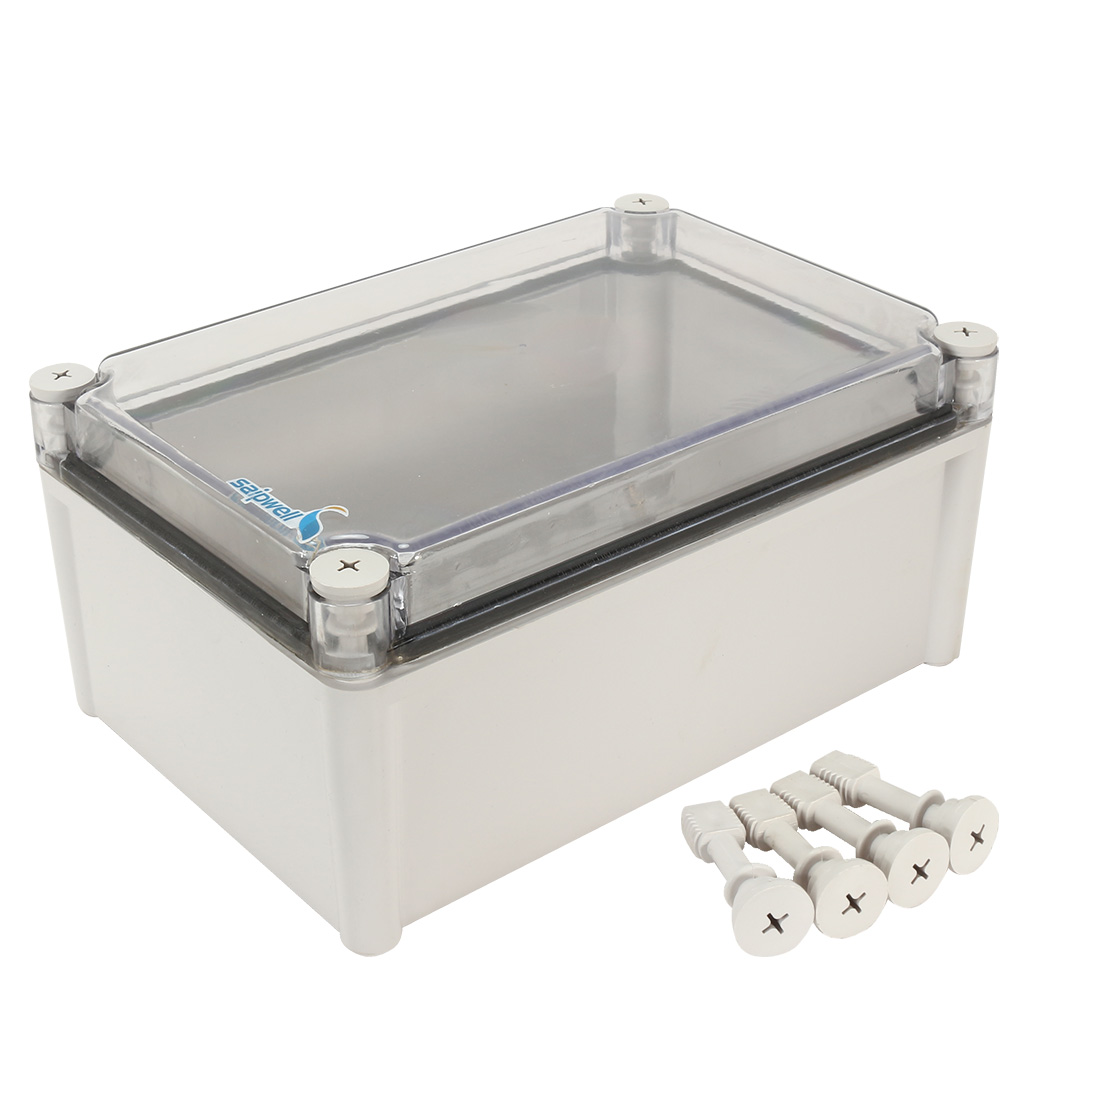 "11""x7.5""x5.1""(280mmx190mmx130mm) ABS Junction Box Universal Project Enclosure w PC Transparent Cover"